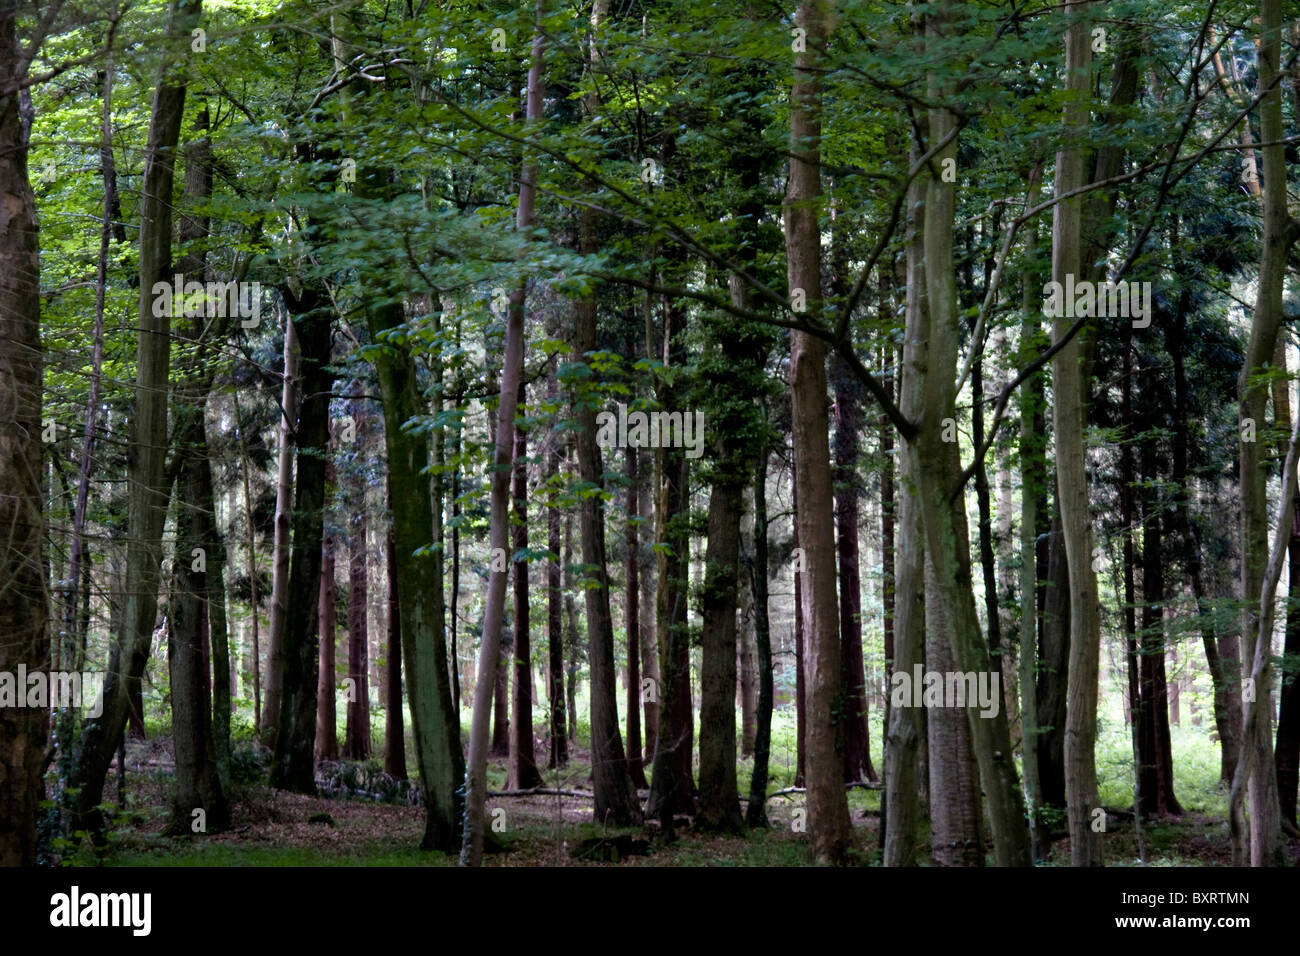 France, Normandie, Foret d'Eu, View of forest - Stock Image